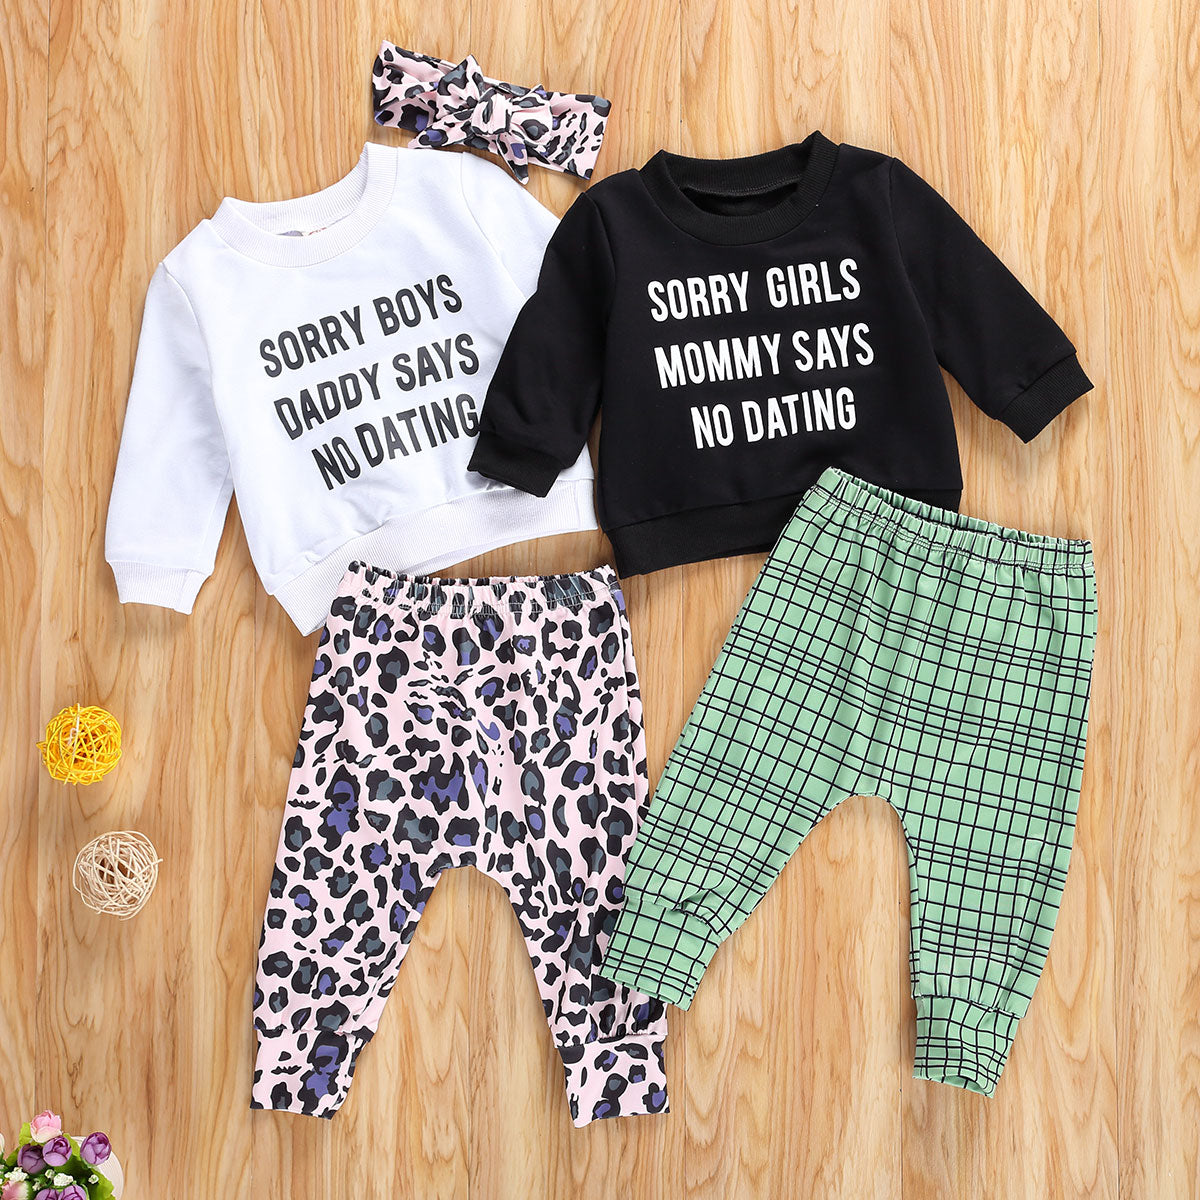 1-4 Years Sorry Boys Daddy says no dating 3Pcs Newborn Toddler Girls Autumn Clothes Letter Printed Shirt Top + Leopard Long Pant Headband Outfit 4Styles